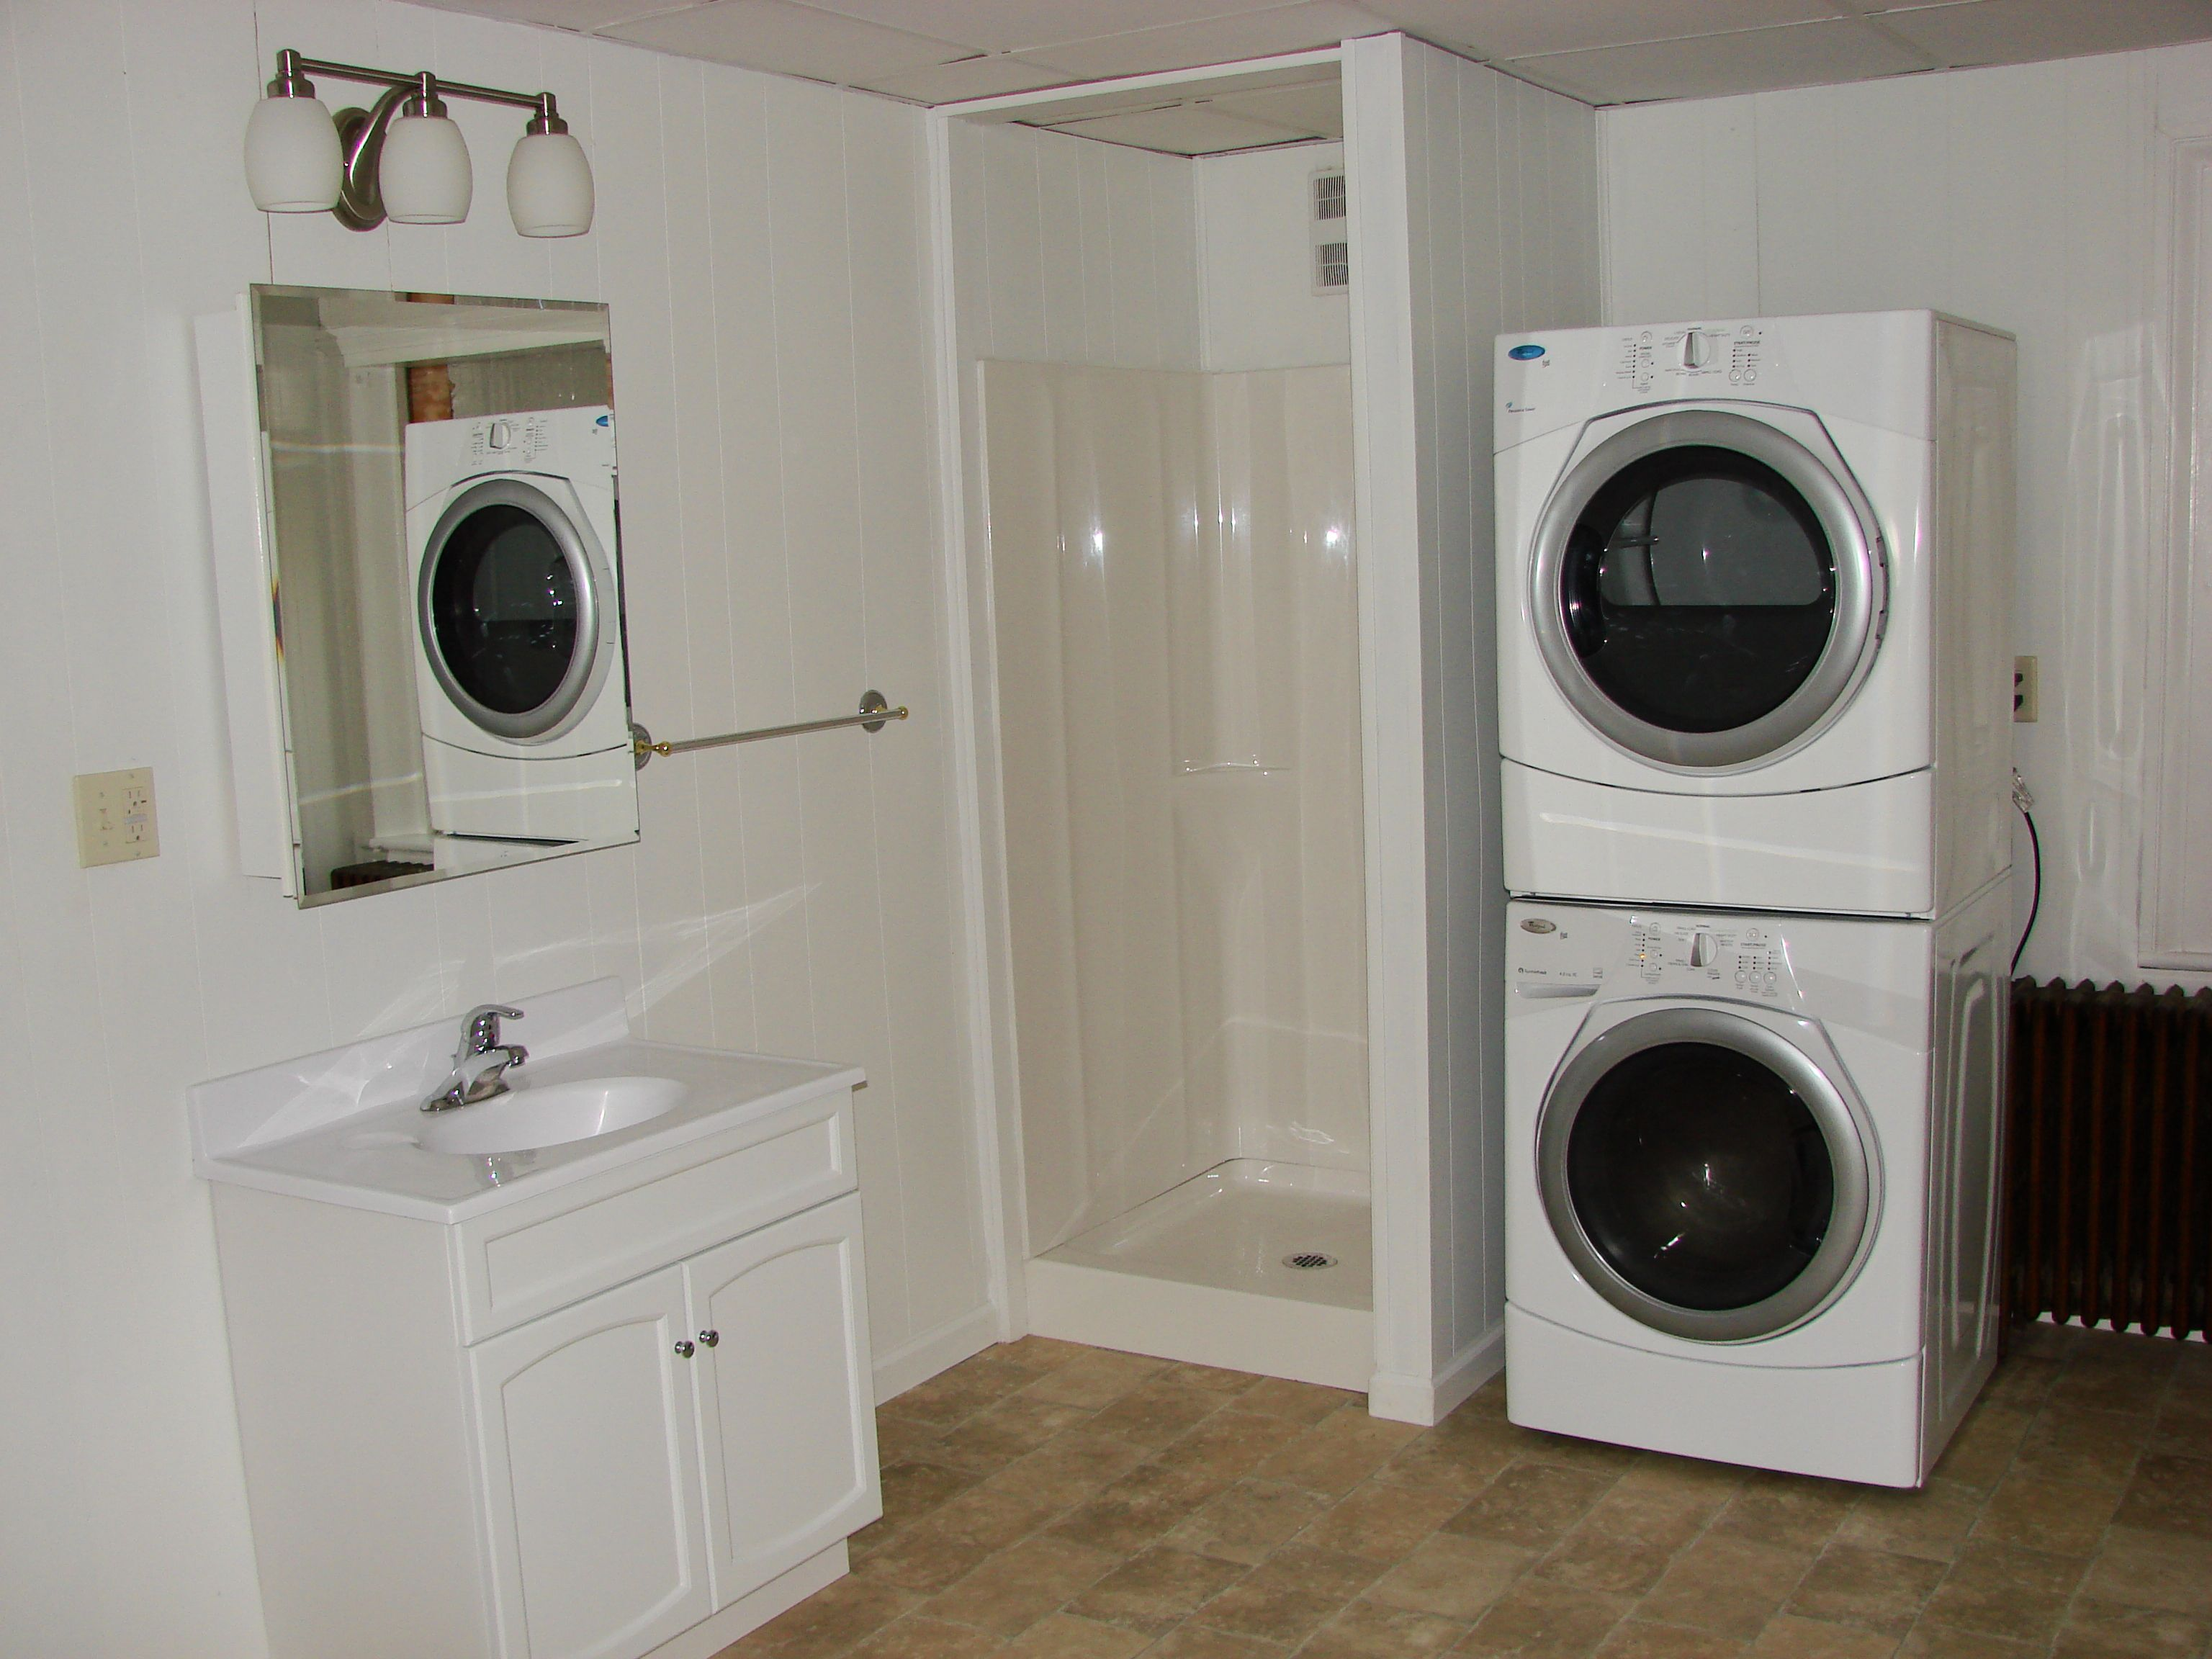 Cool white wash machine and dry machine on the side of Design a laundr room laout